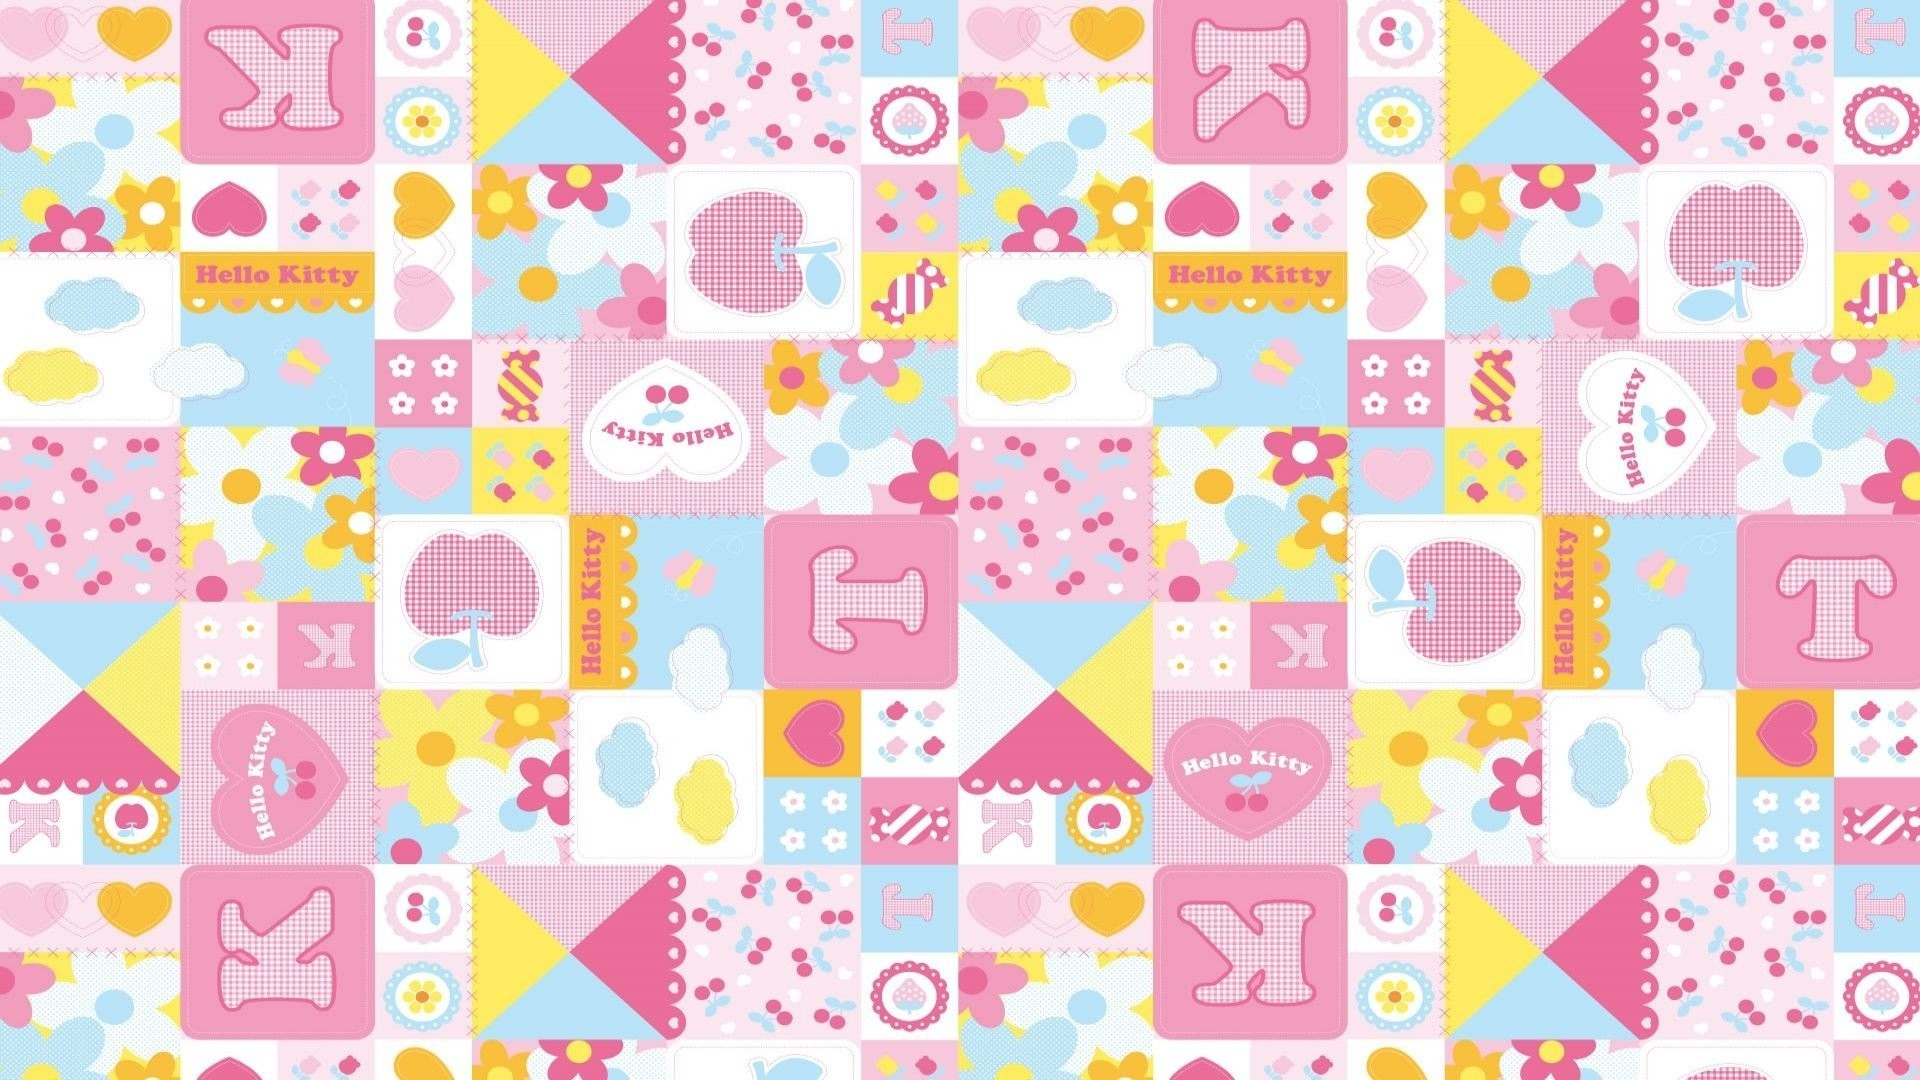 Simple Wallpaper Hello Kitty Angel - 1006035-hello-kitty-wallpapers-and-screensavers-1920x1080-for-windows  Image_14367.jpg